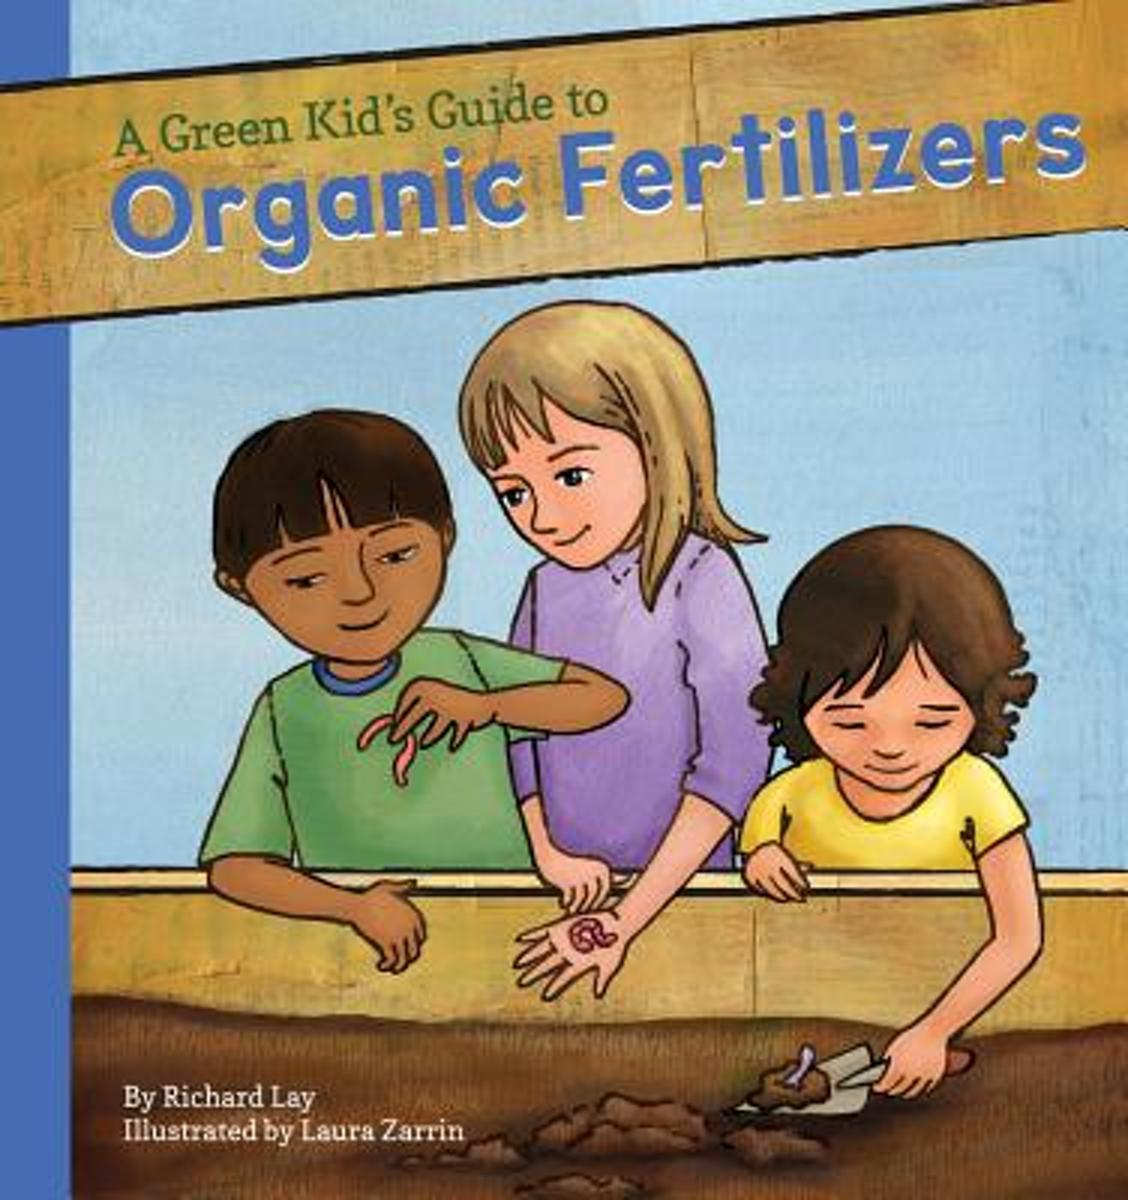 Green Kid's Guide to Organic Fertilizers